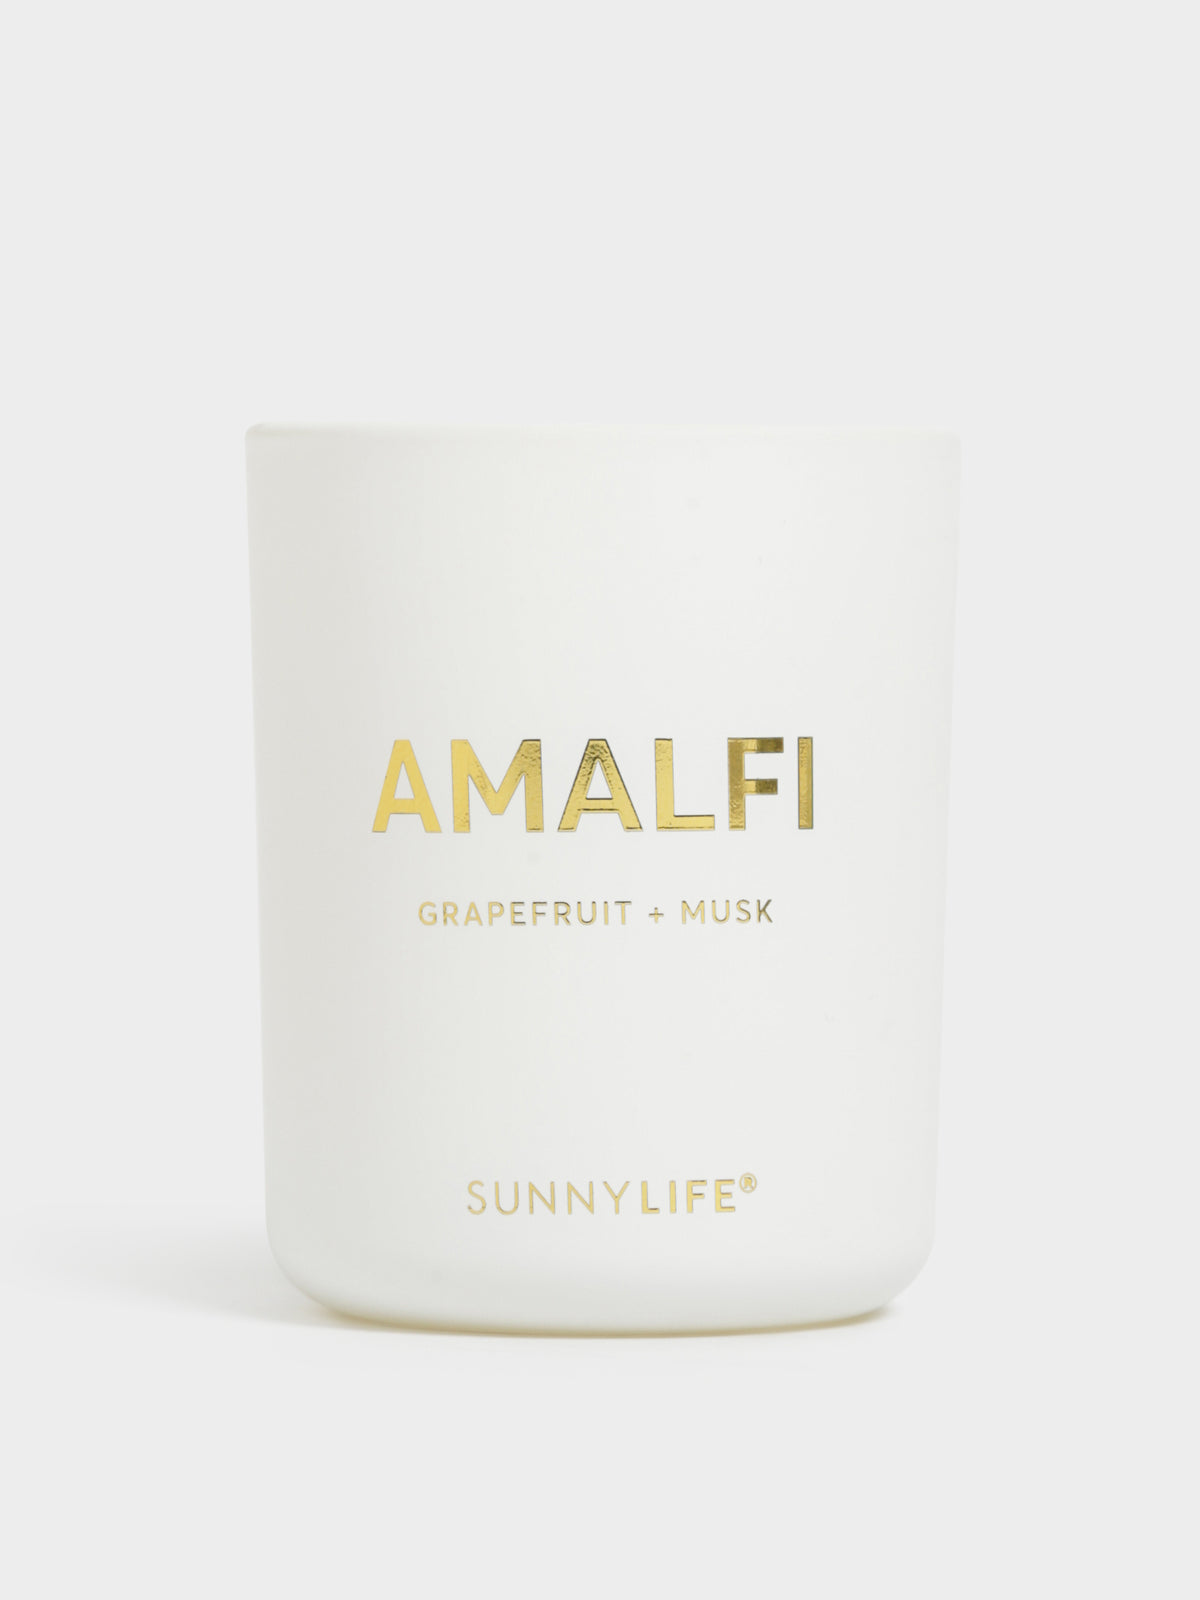 Amalfi Scented Candle in Grapefruit & Musk